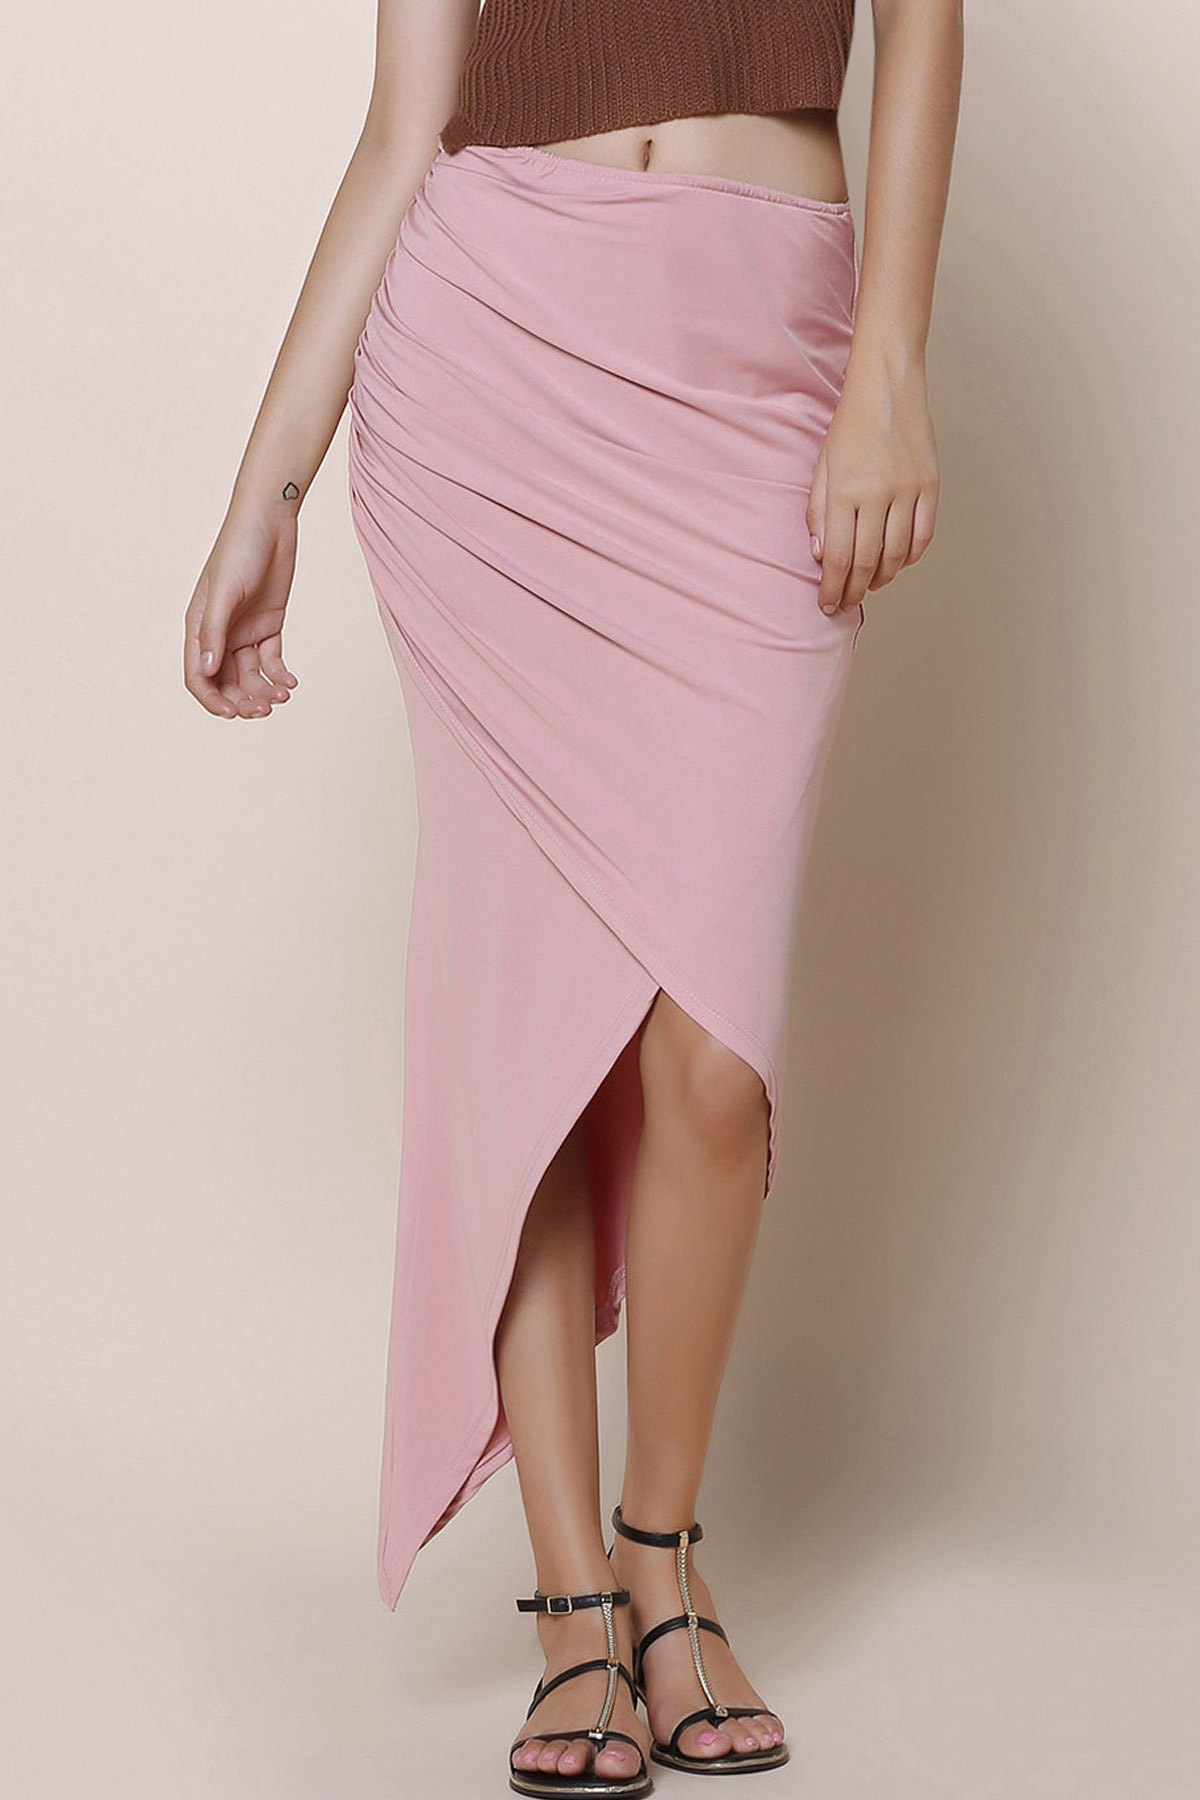 Fashionable Solid Color Asymmetric Women's Skirt